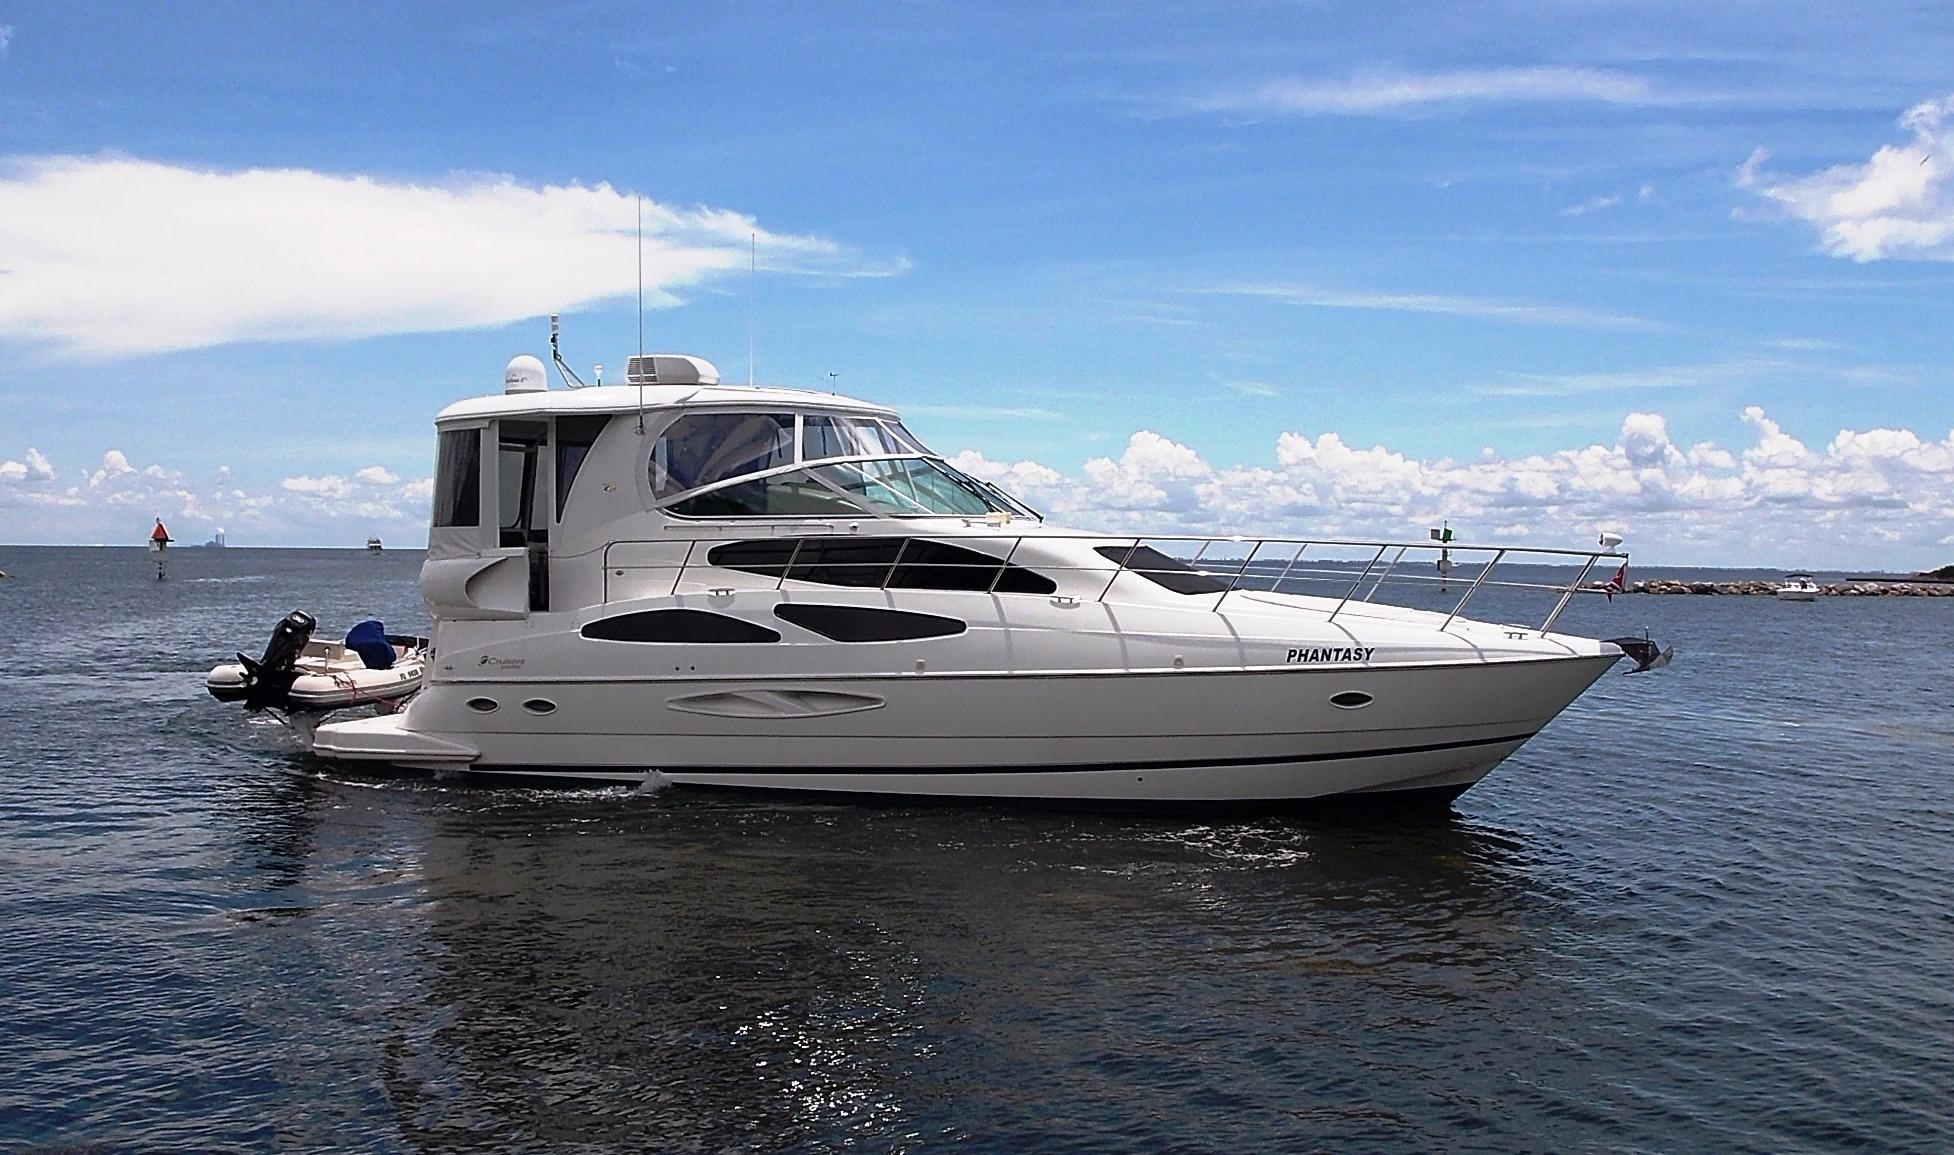 45 cruisers yachts 2004 phantasy for sale in apollo beach for Used motor yachts for sale in florida